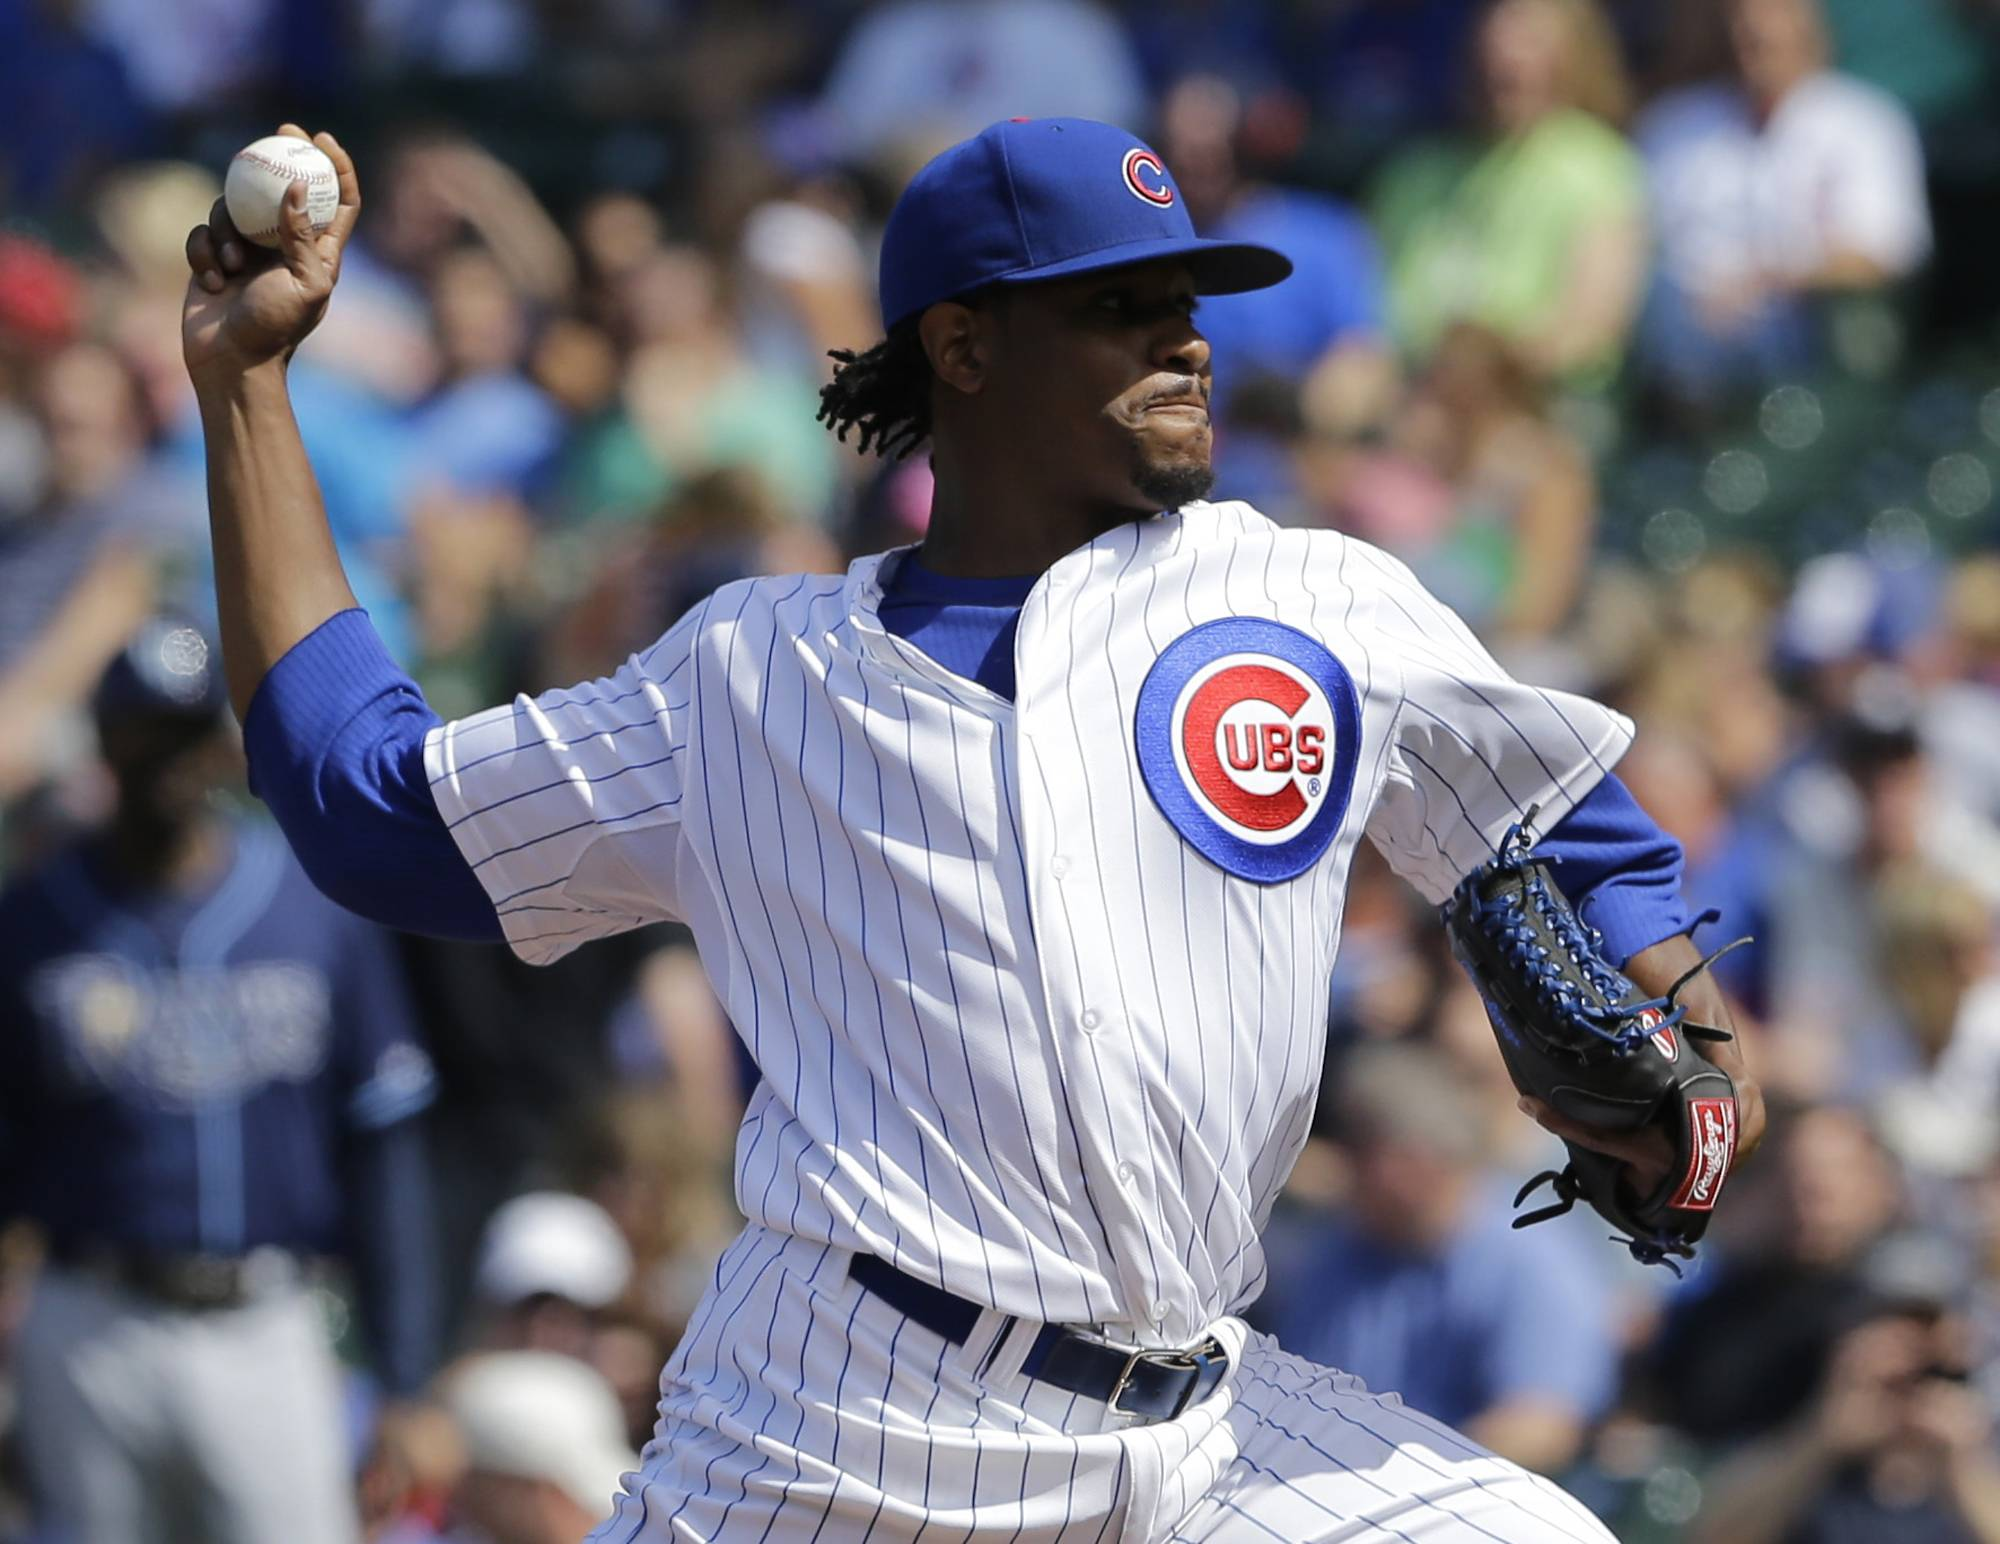 Cubs starter Edwin Jackson throws against the Tampa Bay Rays during Saturday's game at Wrigley Field. The Cubs lost 4-0. Jackson allowed four runs -- three earned -- and five hits in six innings. He is 1-5 in his past nine starts.